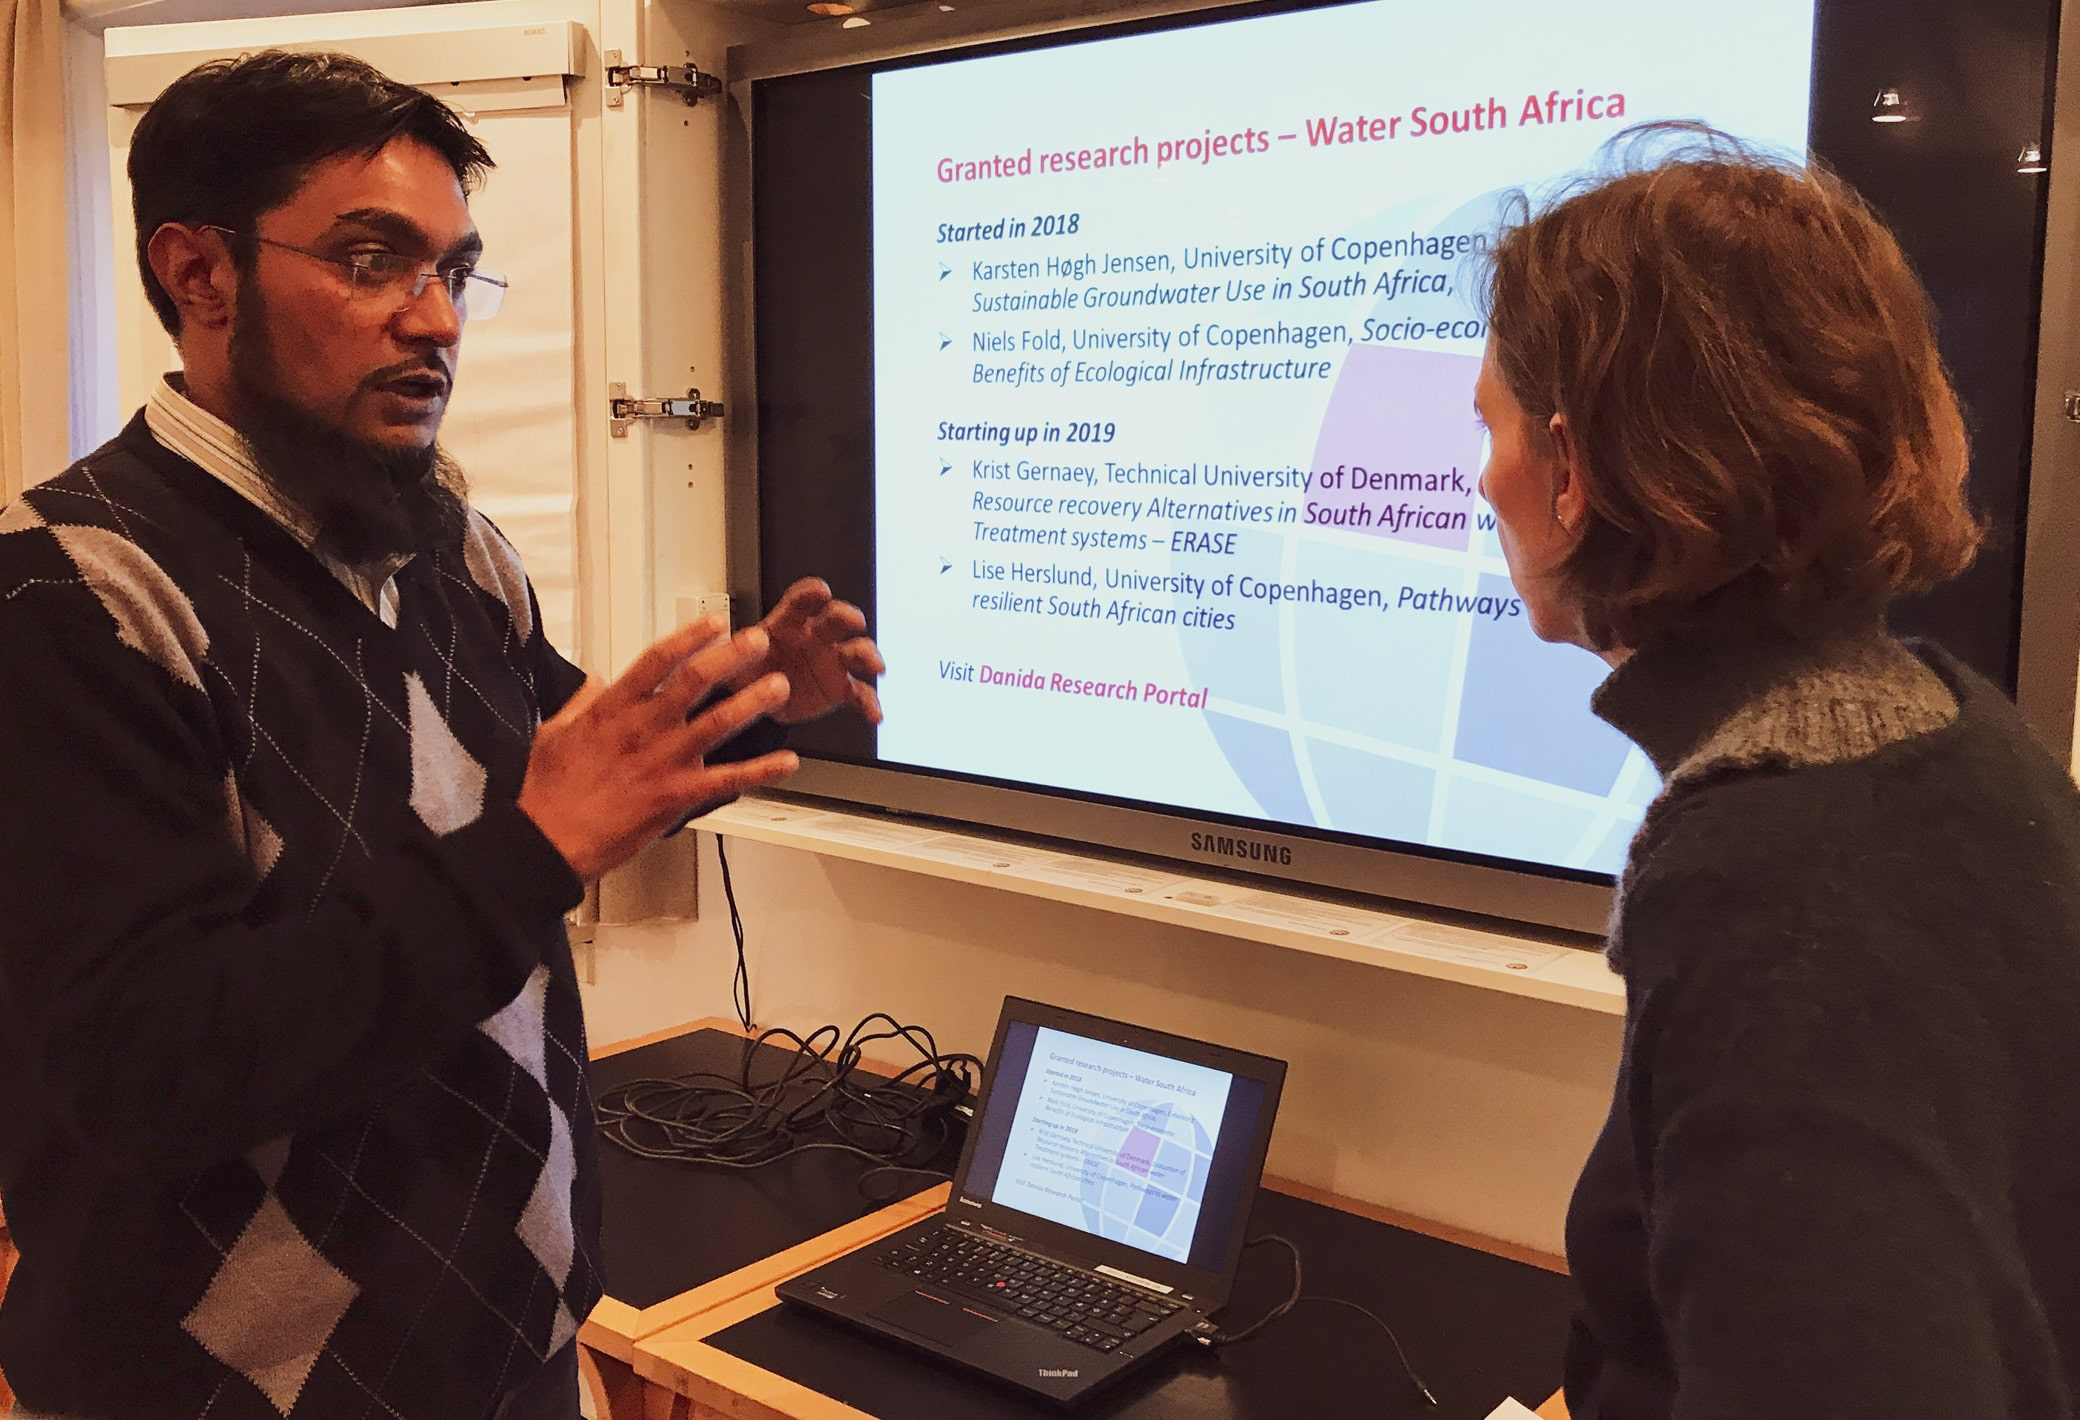 On Wednesday 13 March 2019 Danida Fellowship Centre arranged a meeting to connect users and suppliers of knowledge concerning water management in South Africa, Photo: Vibeke Quaade